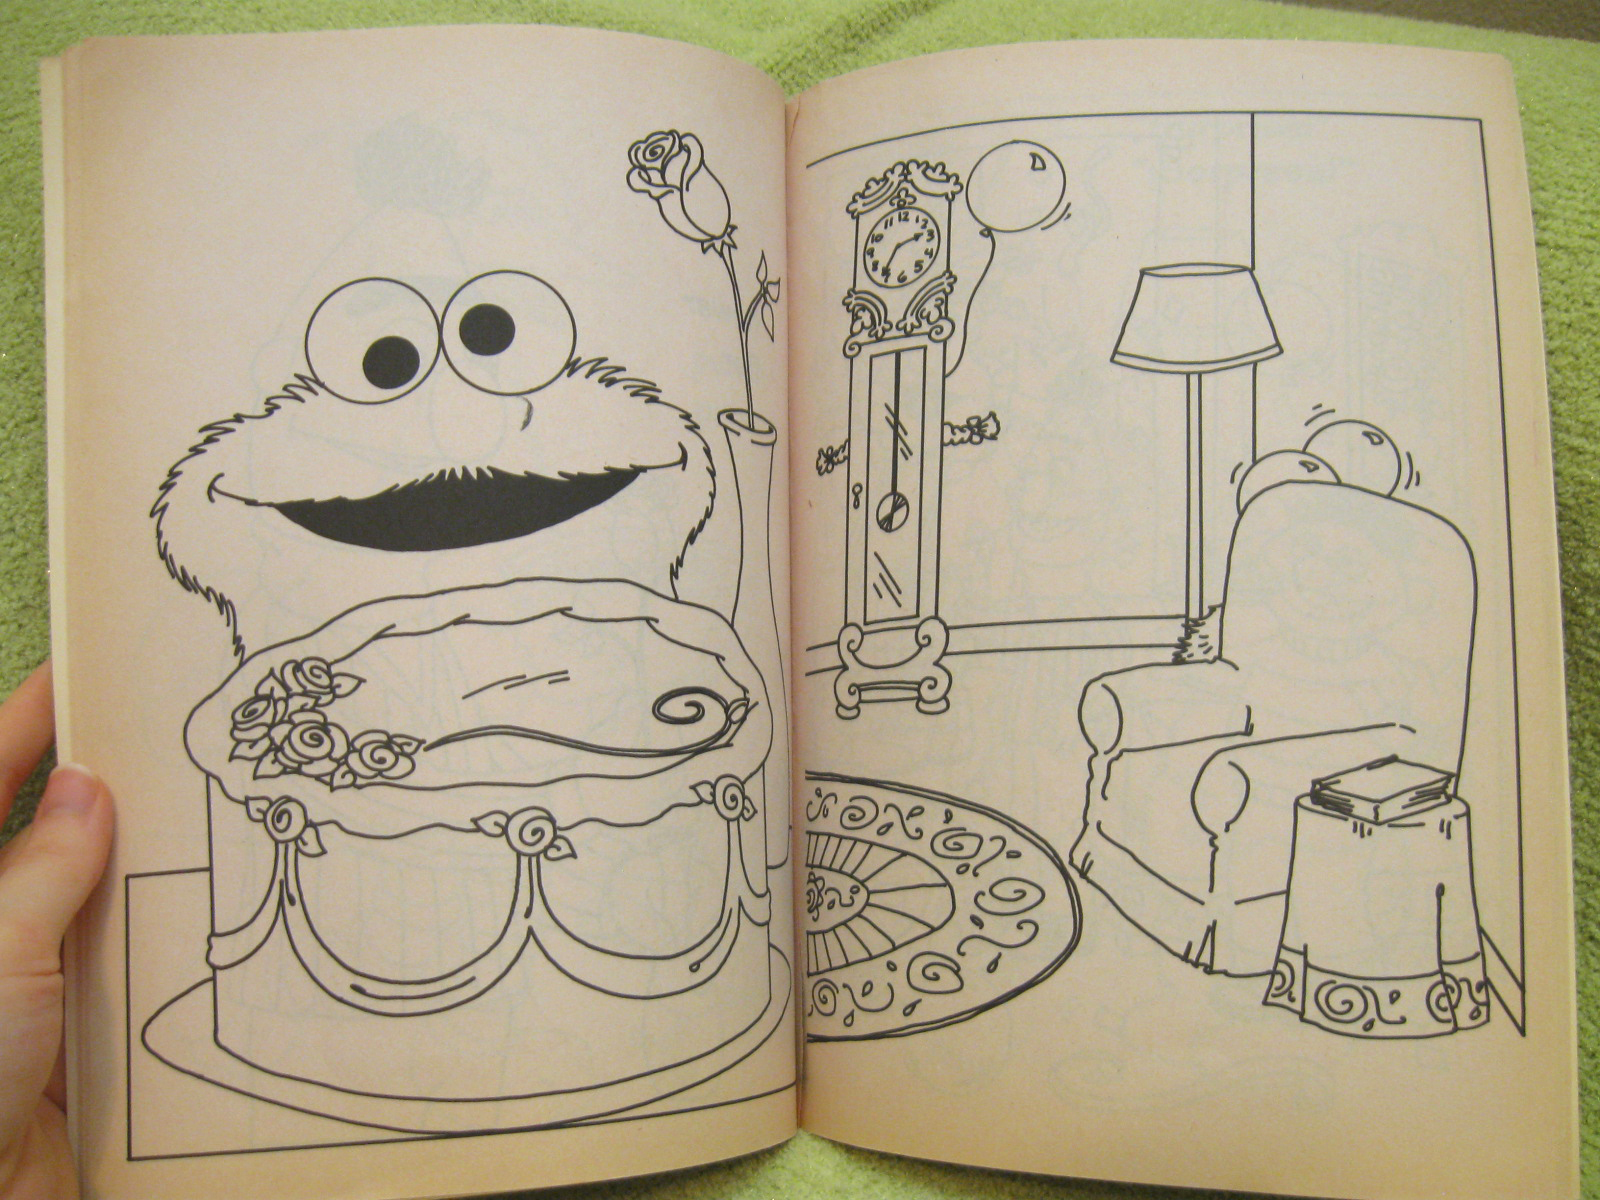 Whitman hot wheels coloring book - Sesame Street Vtg 1993 Coloring Book